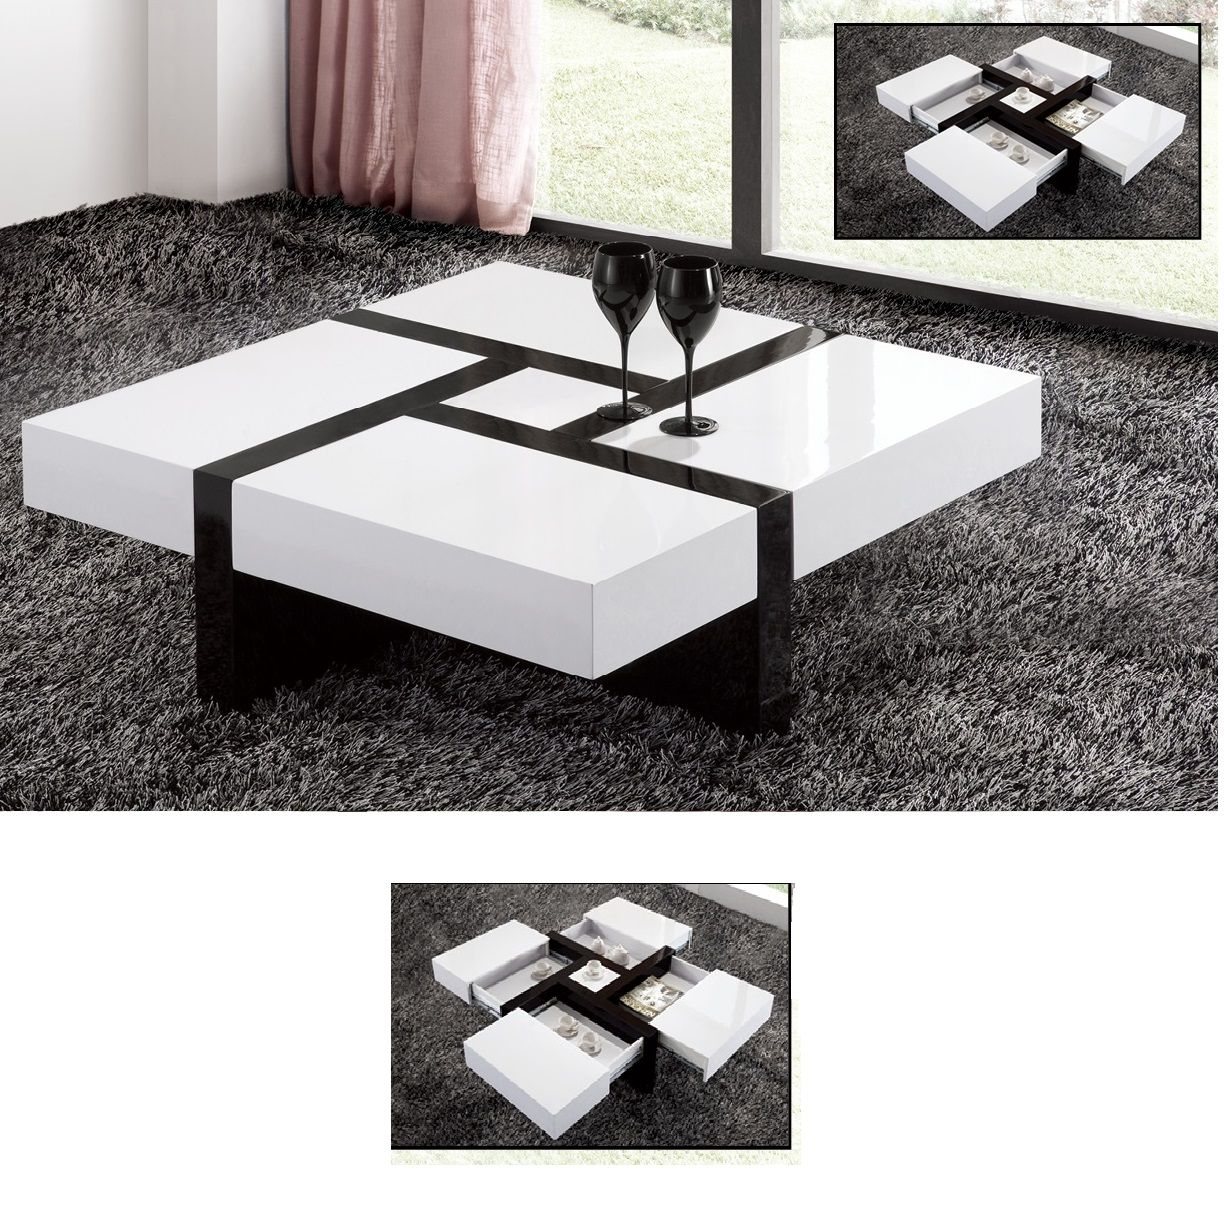 St c18sqaurecoffeetableroomsetg 12241224 interior nova extendable high gloss coffee table in white with storage high gloss coffee tables black white furnitureinfashion uk geotapseo Image collections